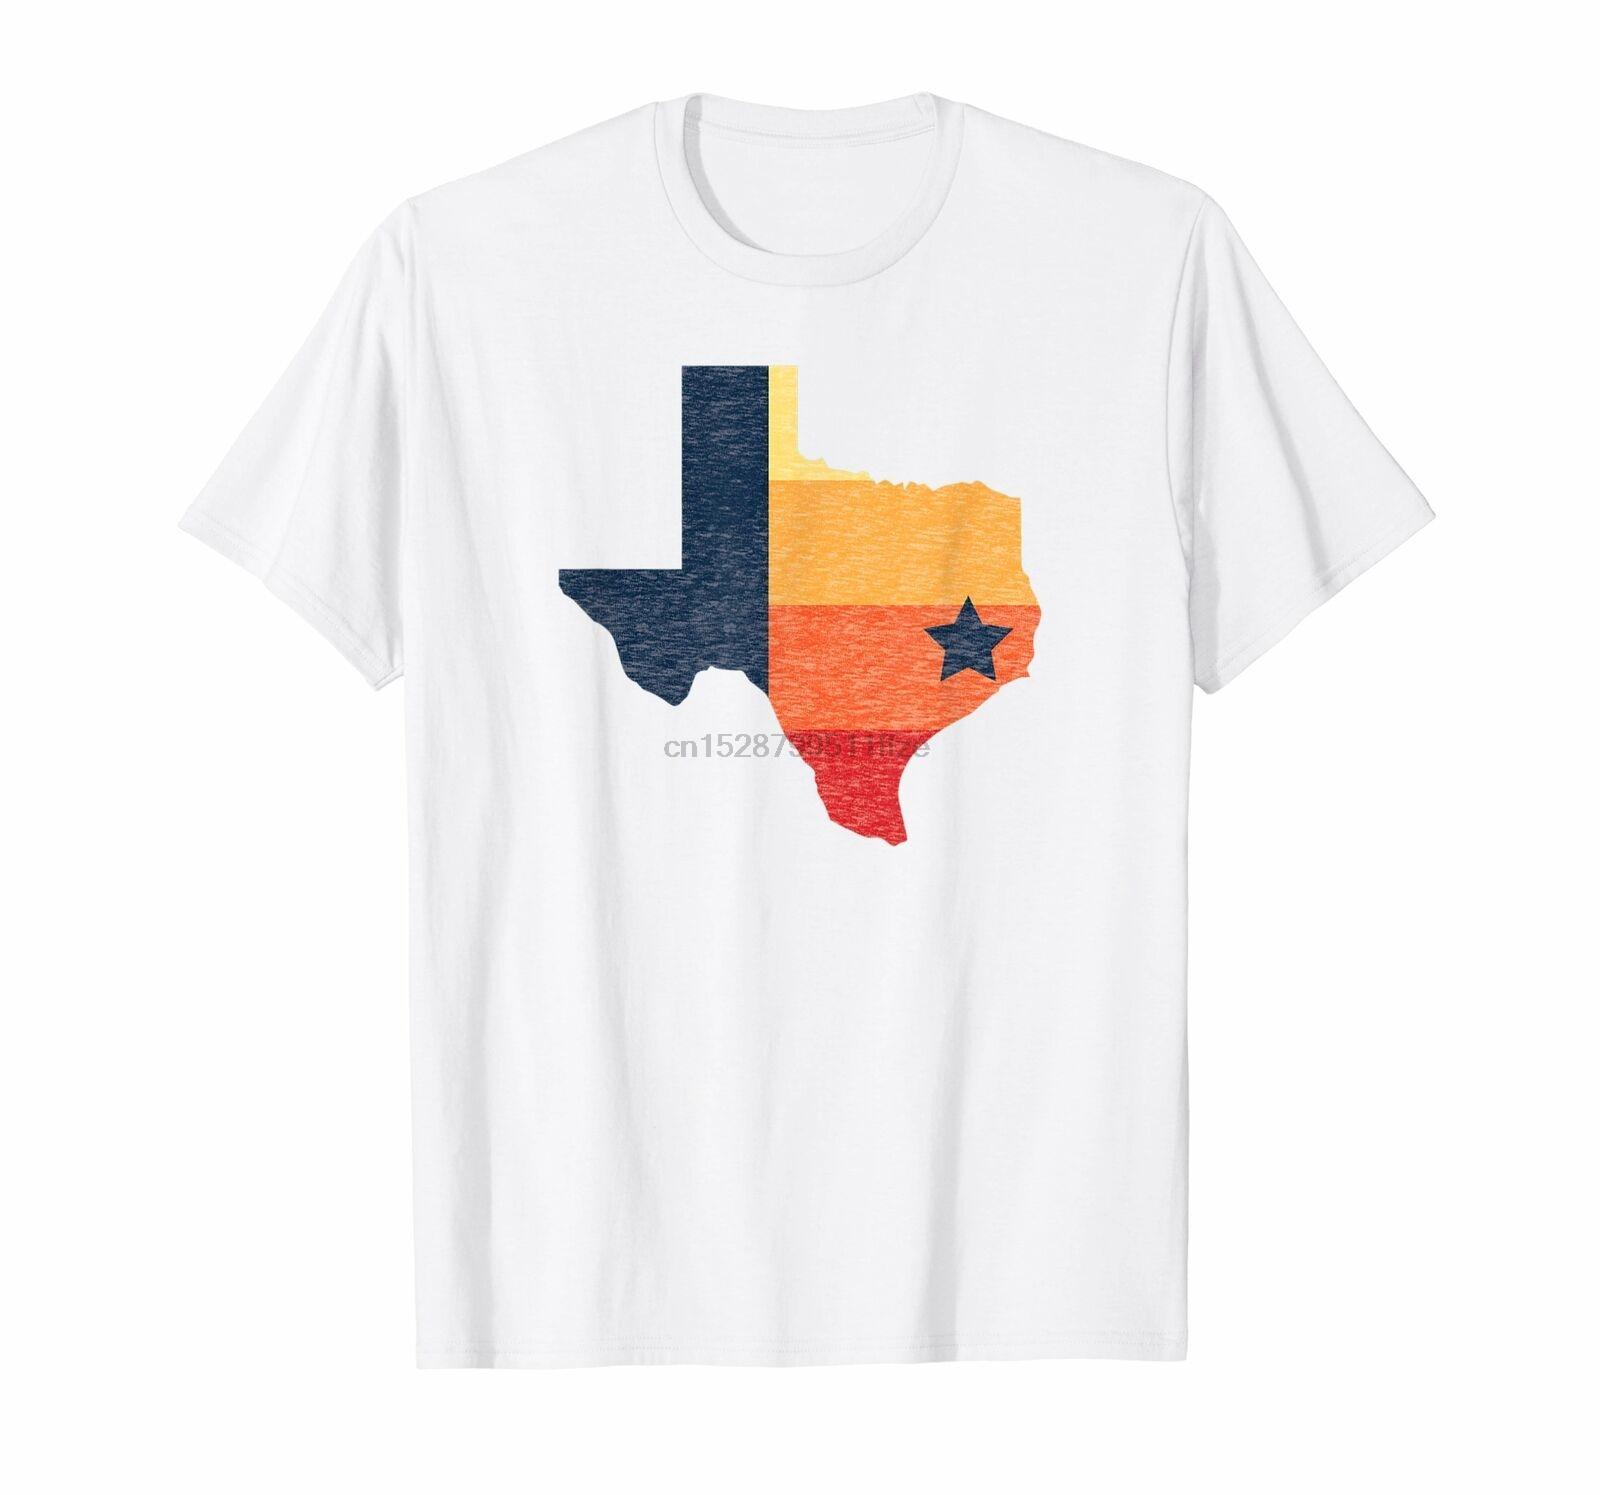 Colori Retro Houston Vintage baseball Texas Mappa T Shirt